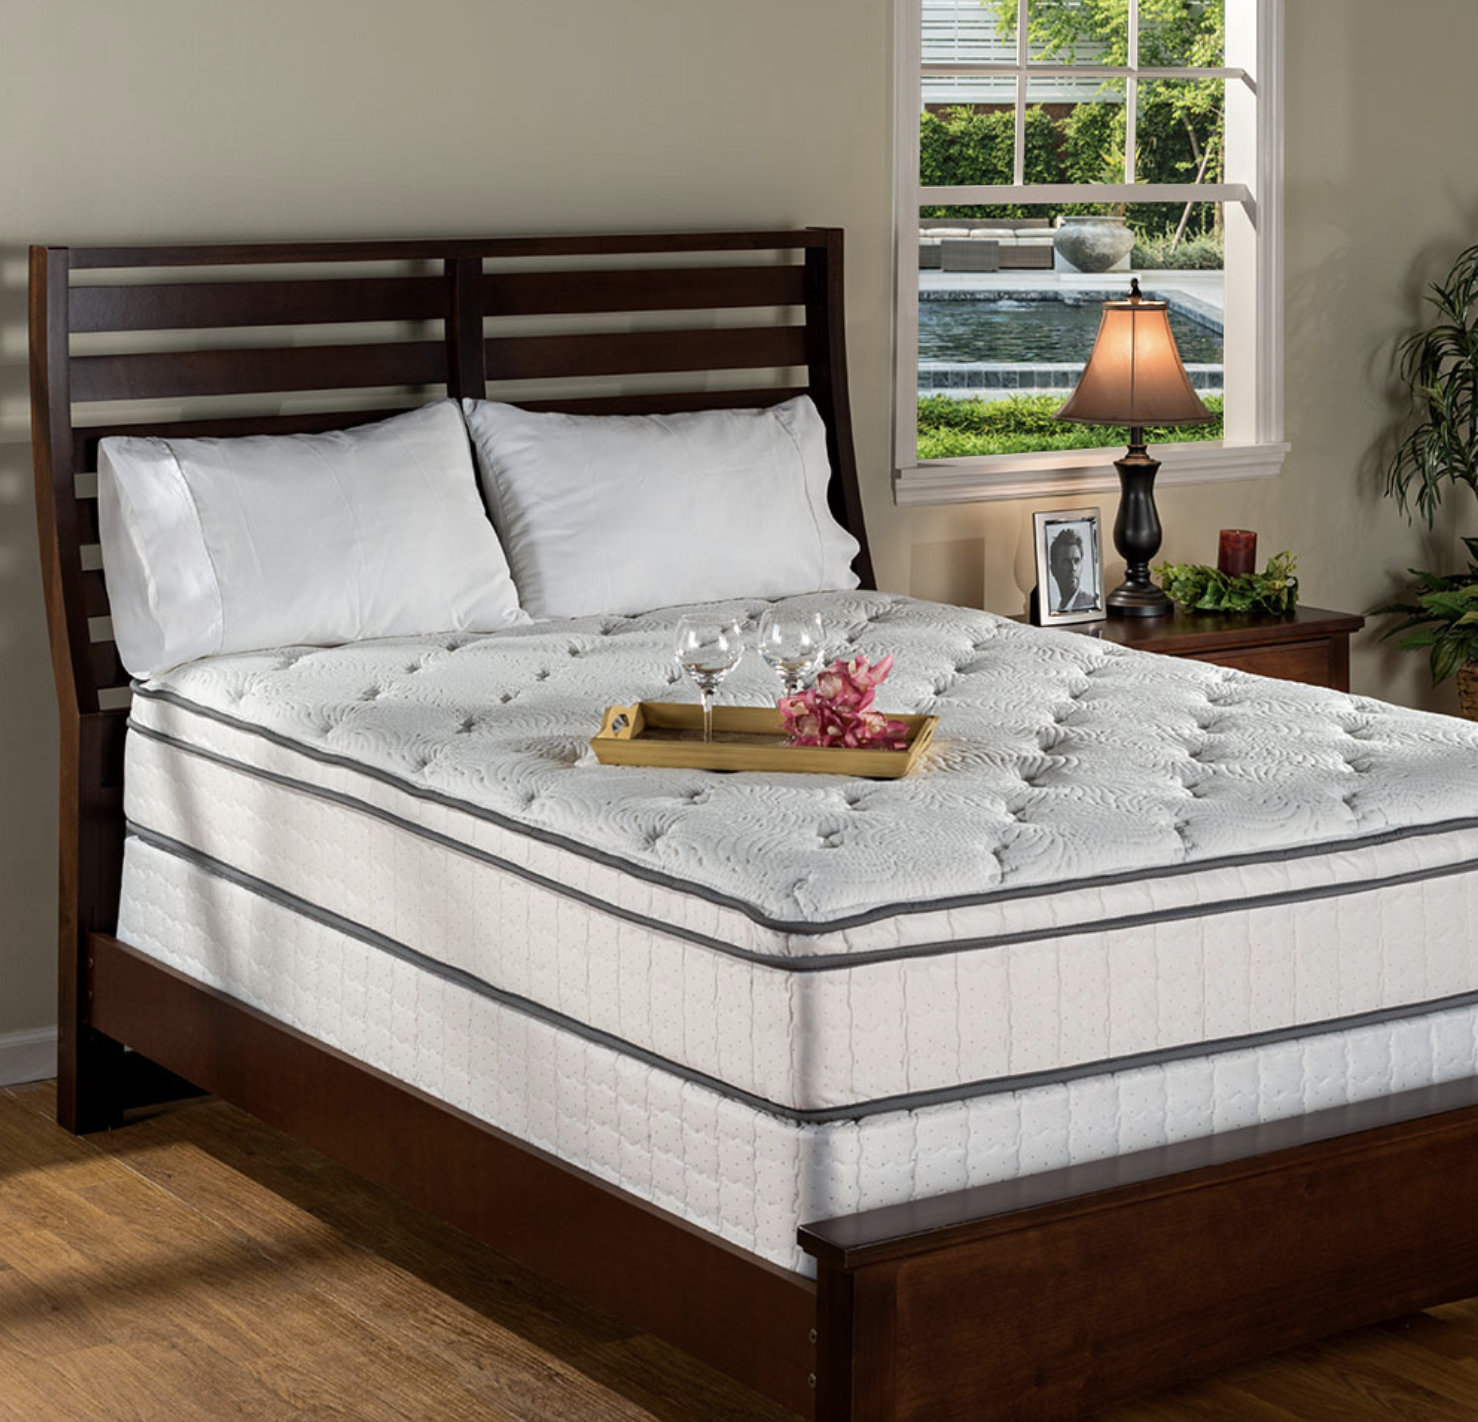 City Mattress – Natural Vita Talalay Latex Mattress Store In Naples Fl